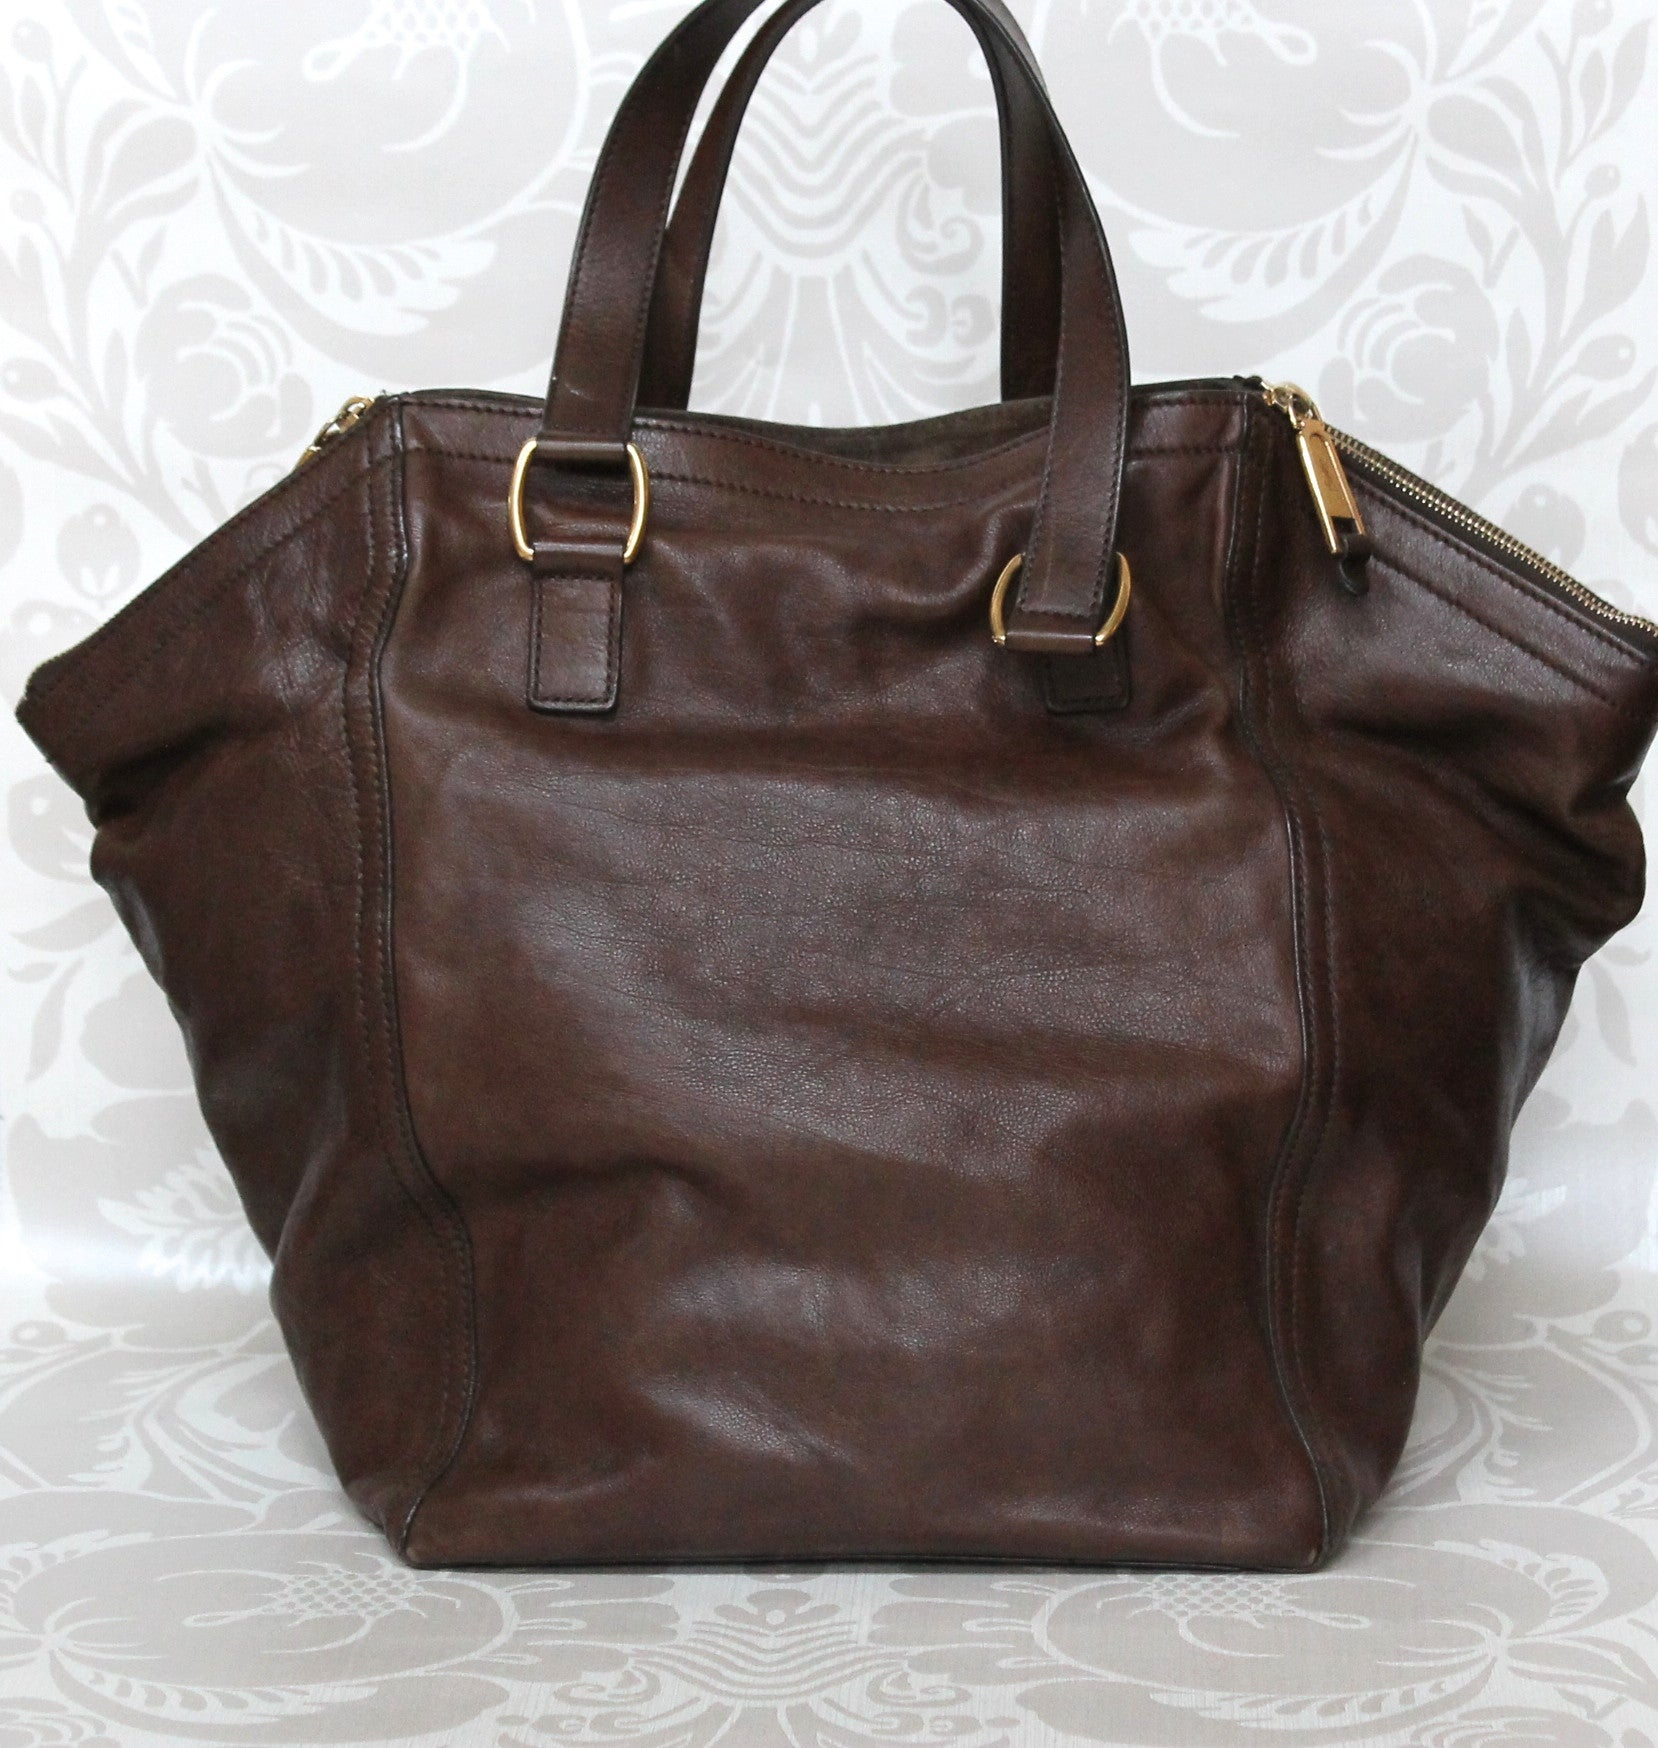 Authentic YVES SAINT LAURENT Brown Leather Downtown Tote Bag